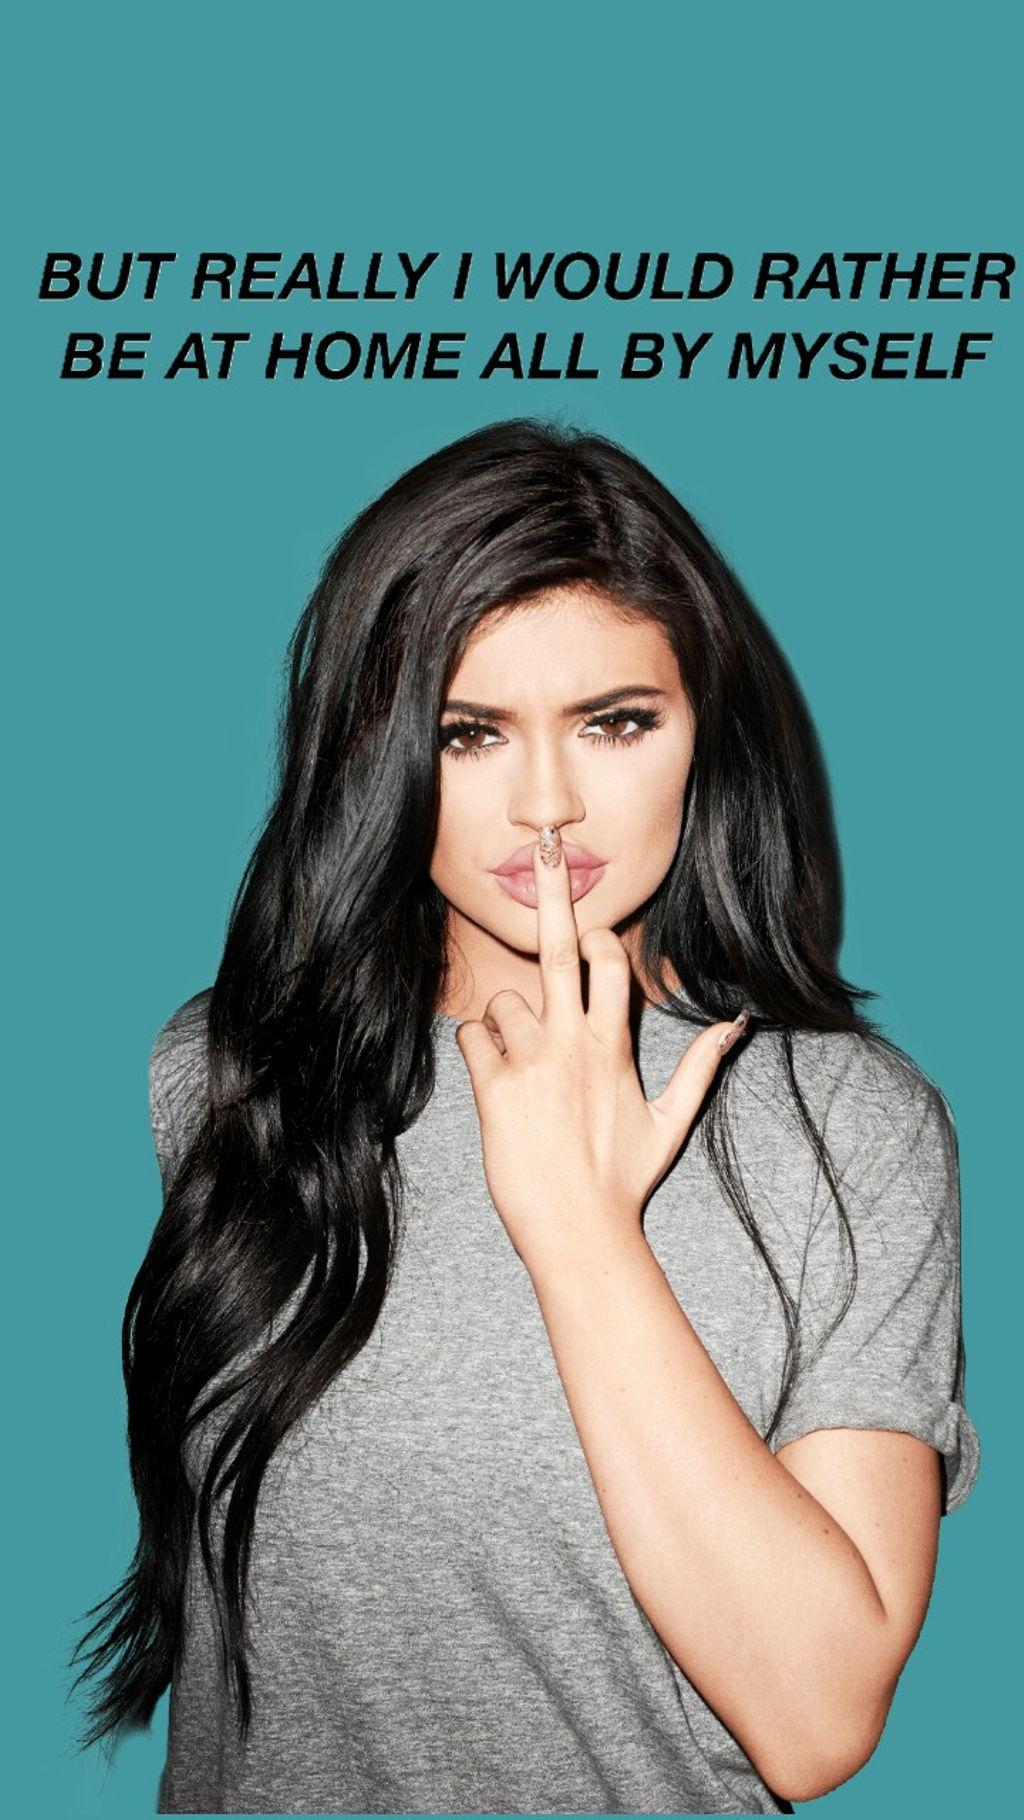 Kylie Jenner 2019 Wallpapers - Wallpaper Cave